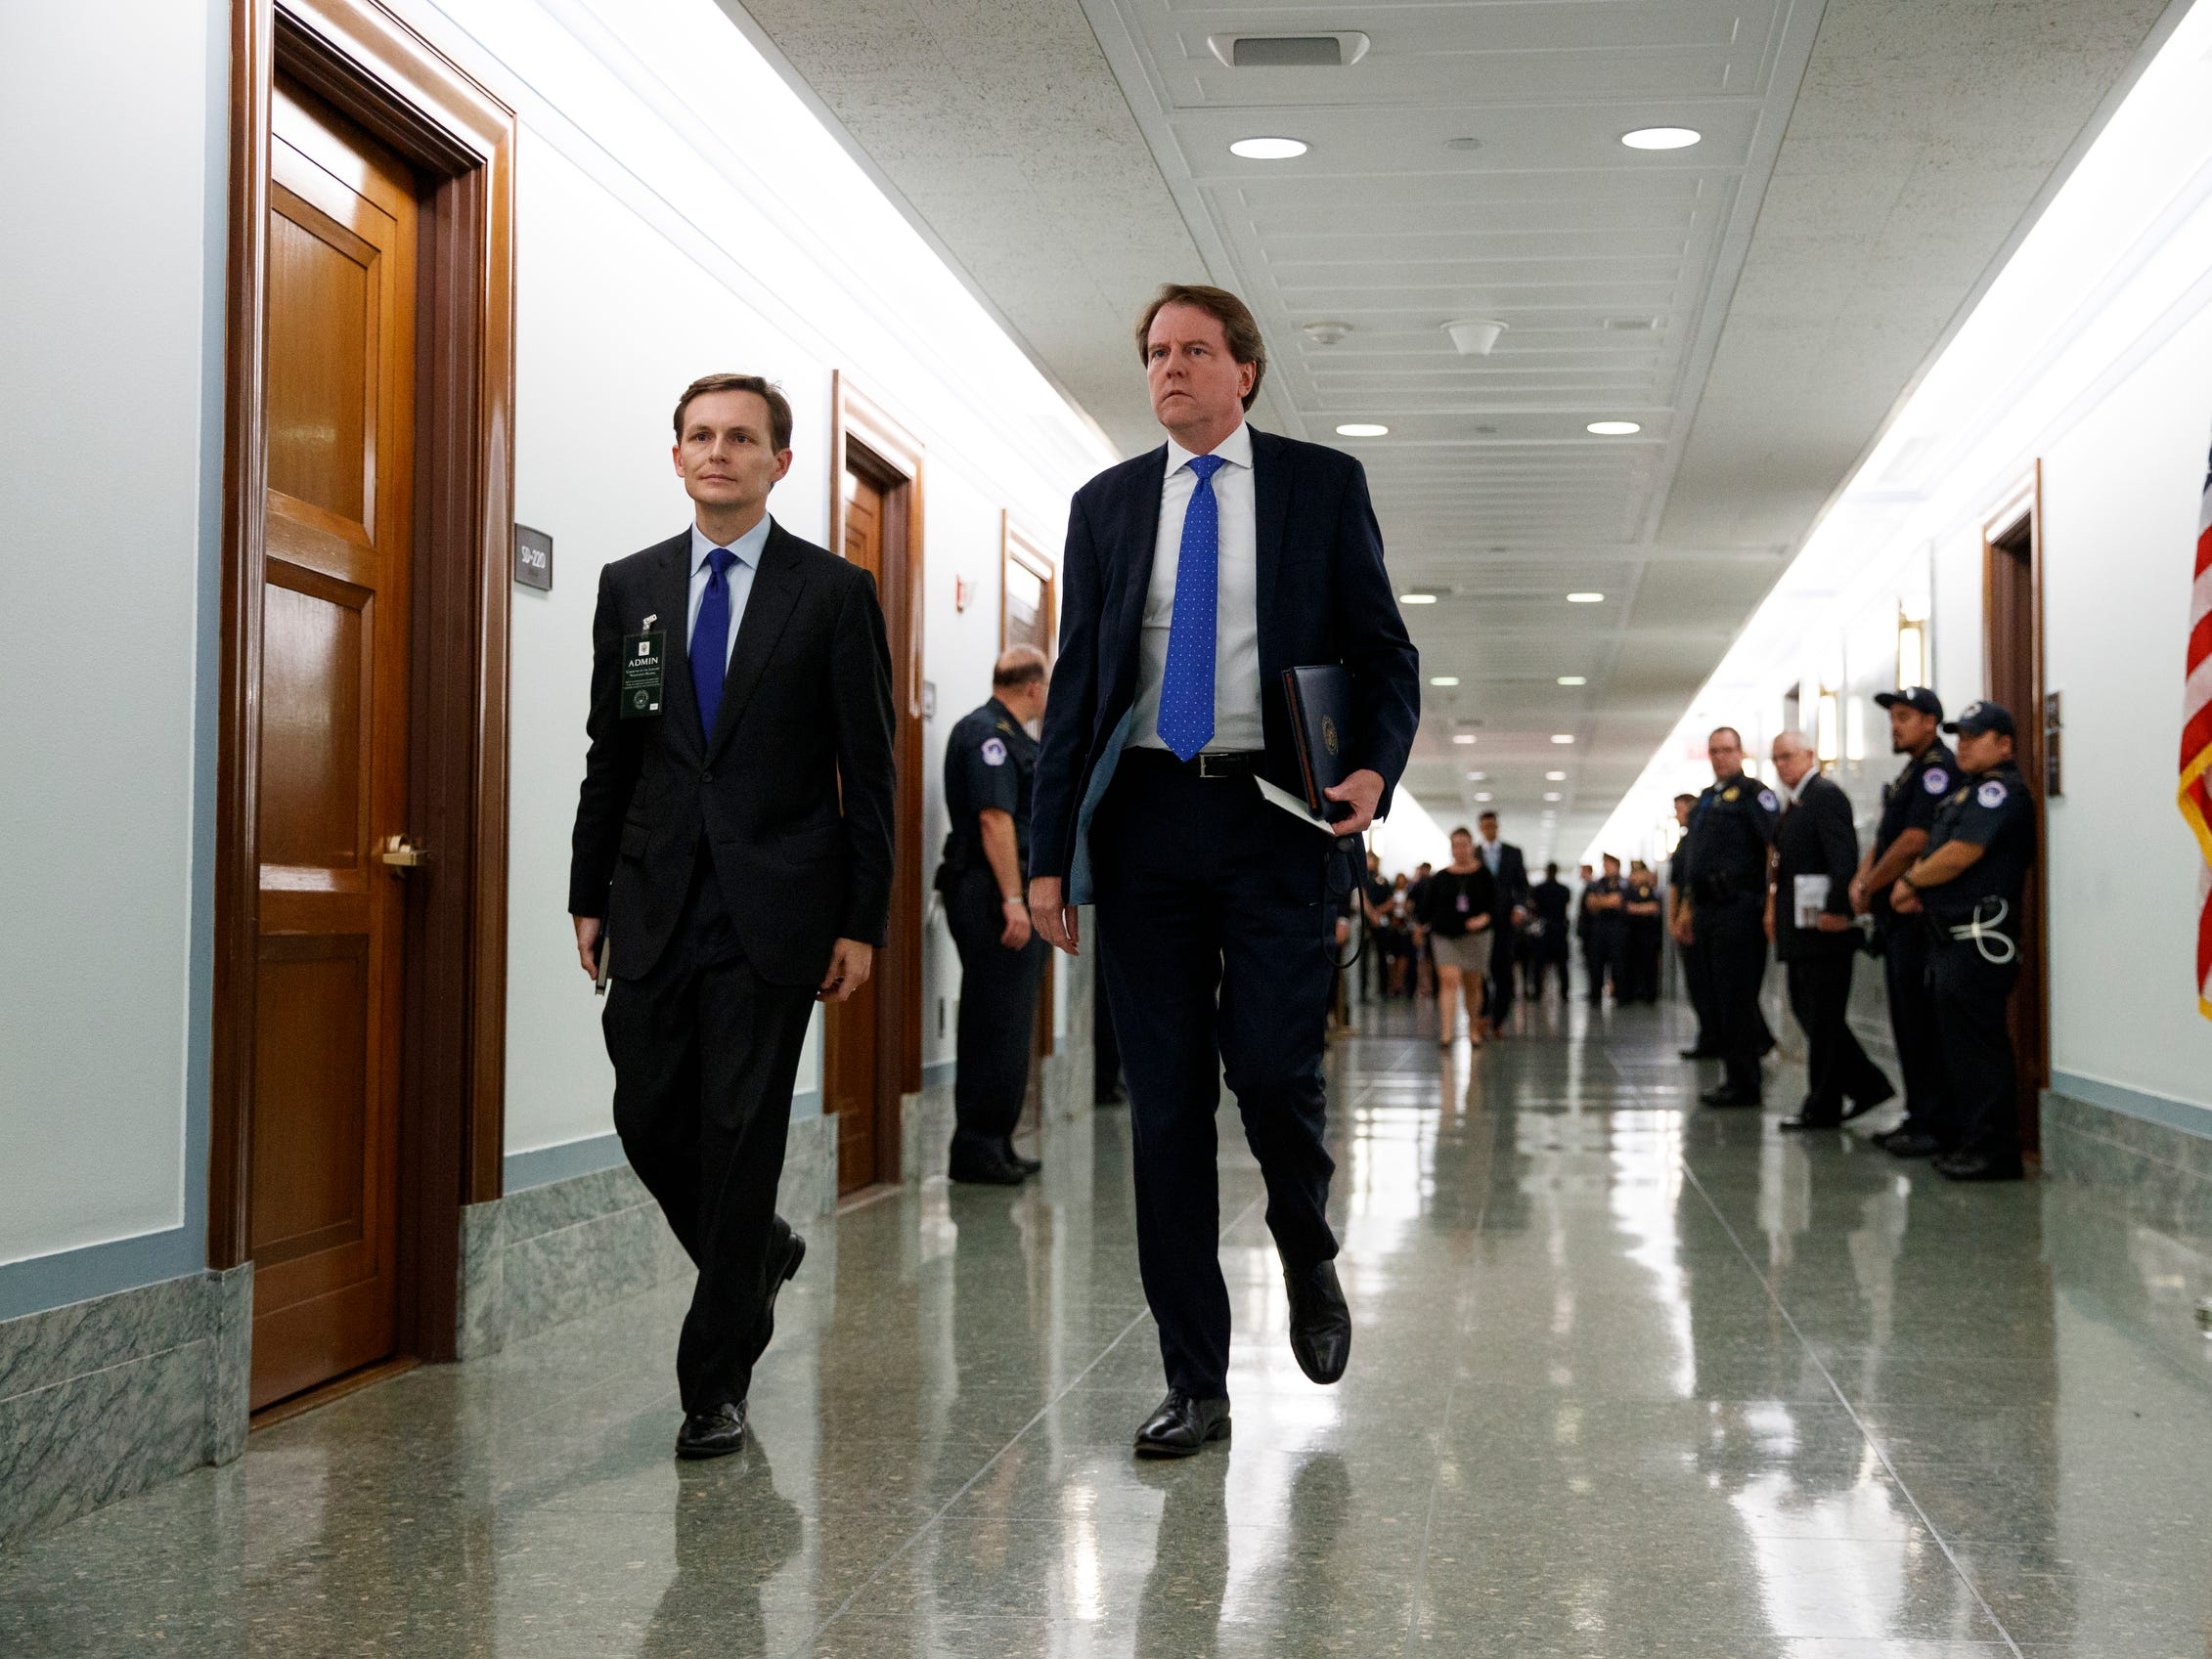 White House counsel Don McGahn, right, arrives for a Senate Judiciary Committee hearing on Capitol Hill in Washington, Thursday.